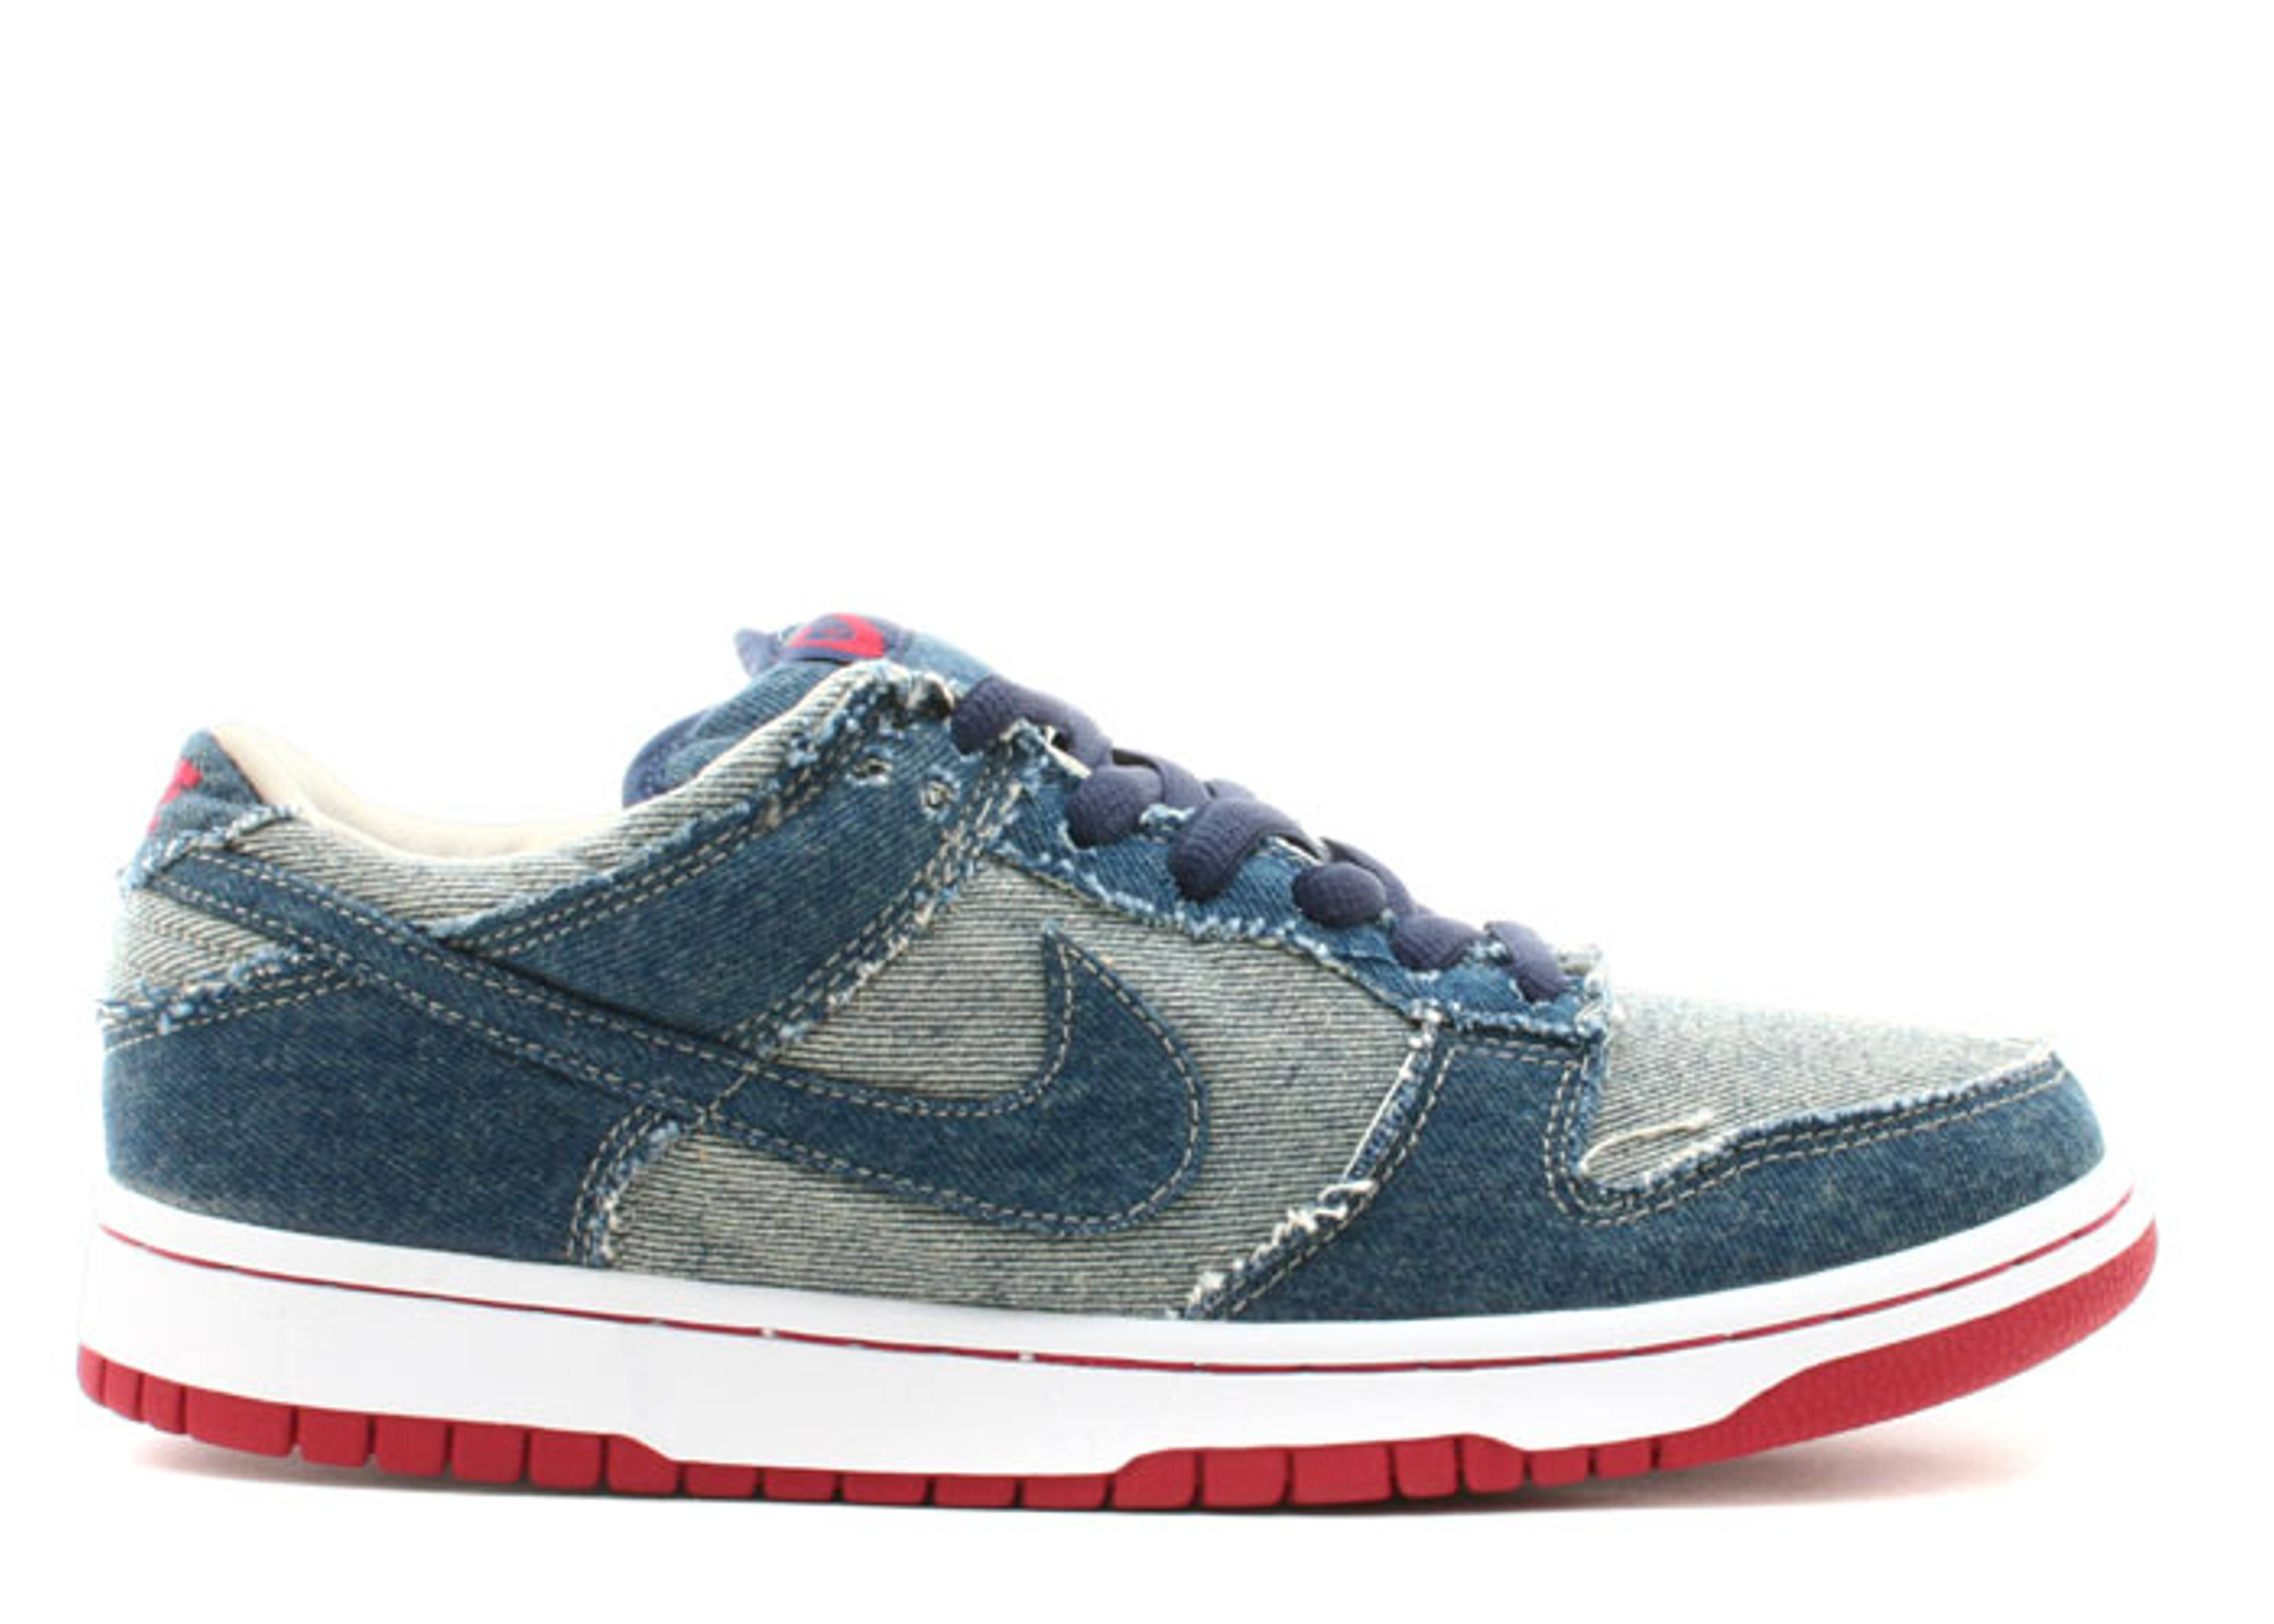 304292441 Nike Dunk Low Pro Sb DenimSkateboarding Shoes New Year Deals